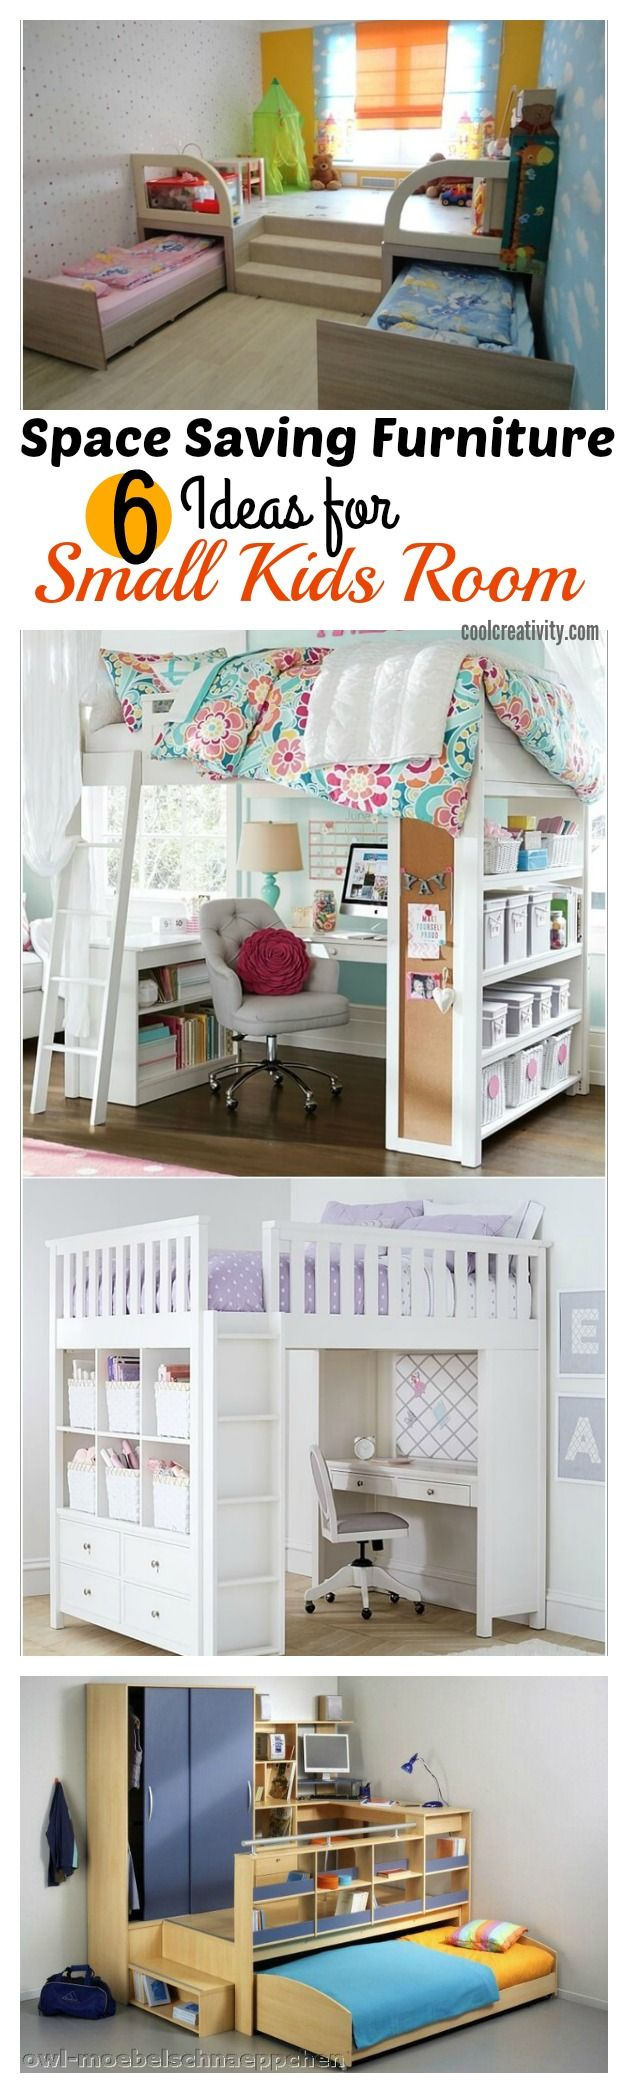 6 space saving furniture ideas for small kids room - Storage For Small Spaces Rooms